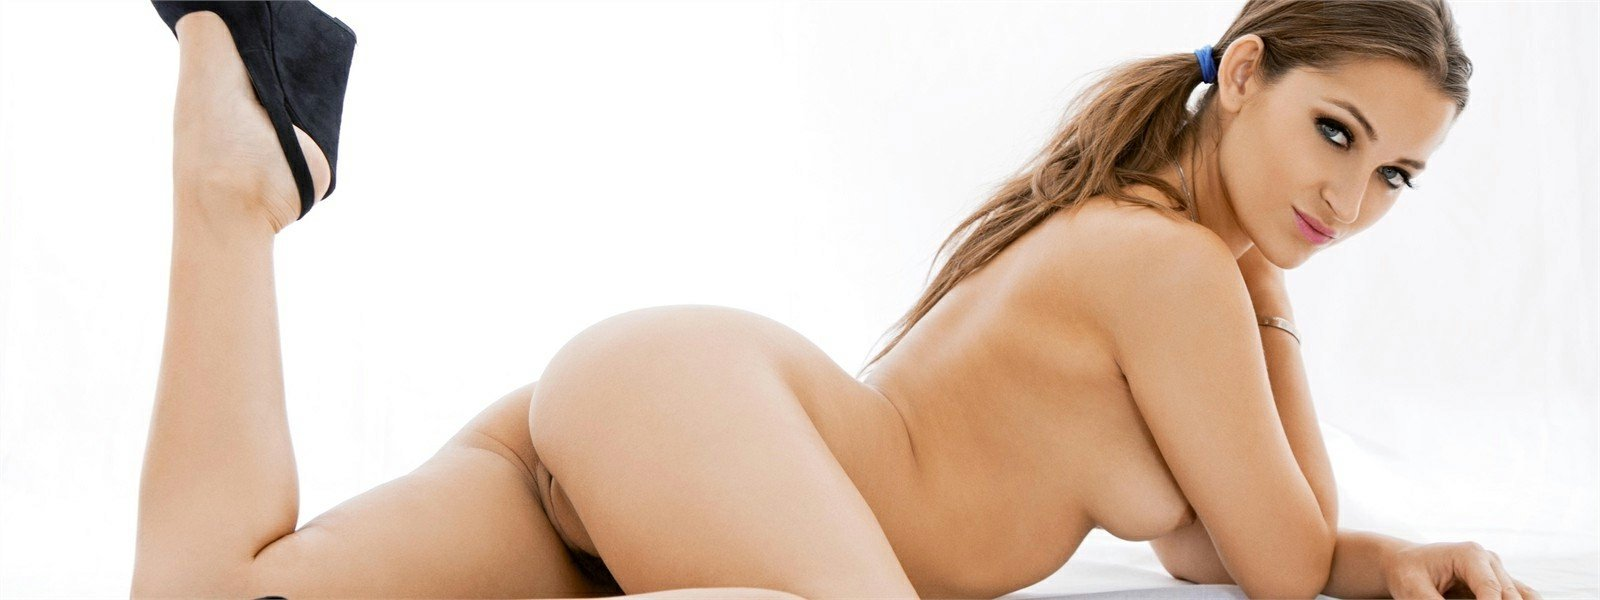 Watch porn scenes from Dani Daniels!